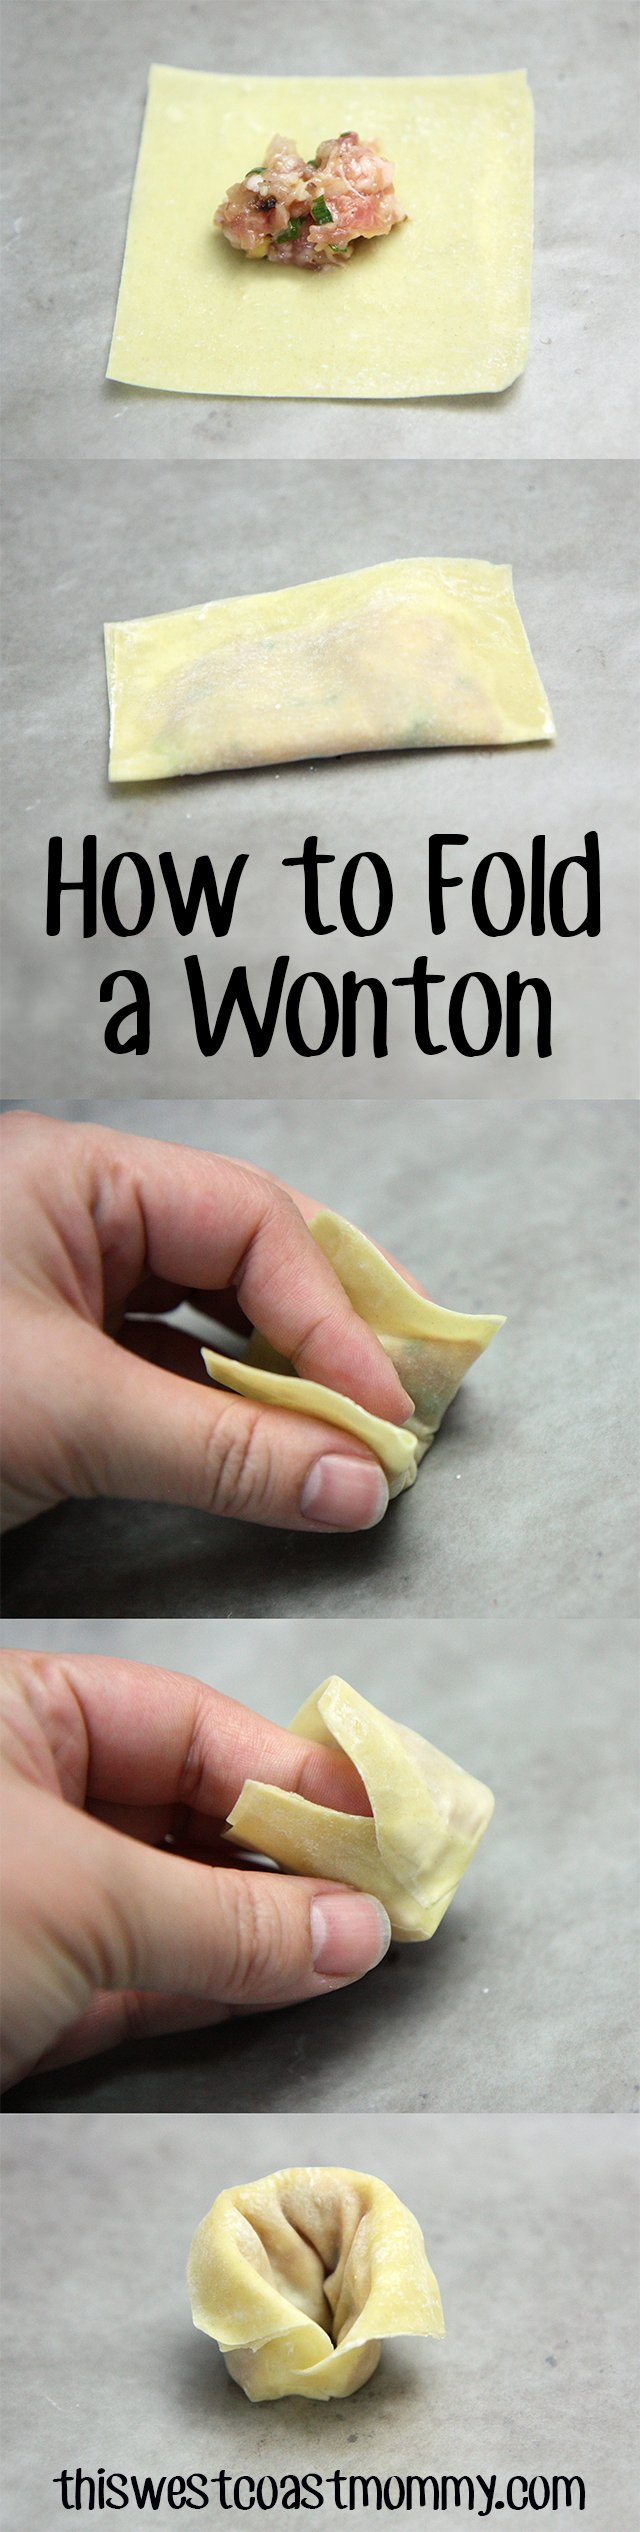 How to fold a wonton. Place a teaspoon of filling in the centre of the wrapper then fold it in half and seal the edges with a bit of water. Gently flatten and spread the filling out to the edges, then curve the wonton around your finger and seal the bottom corners together with water. Finish by gently folding the lengthwise edge over.